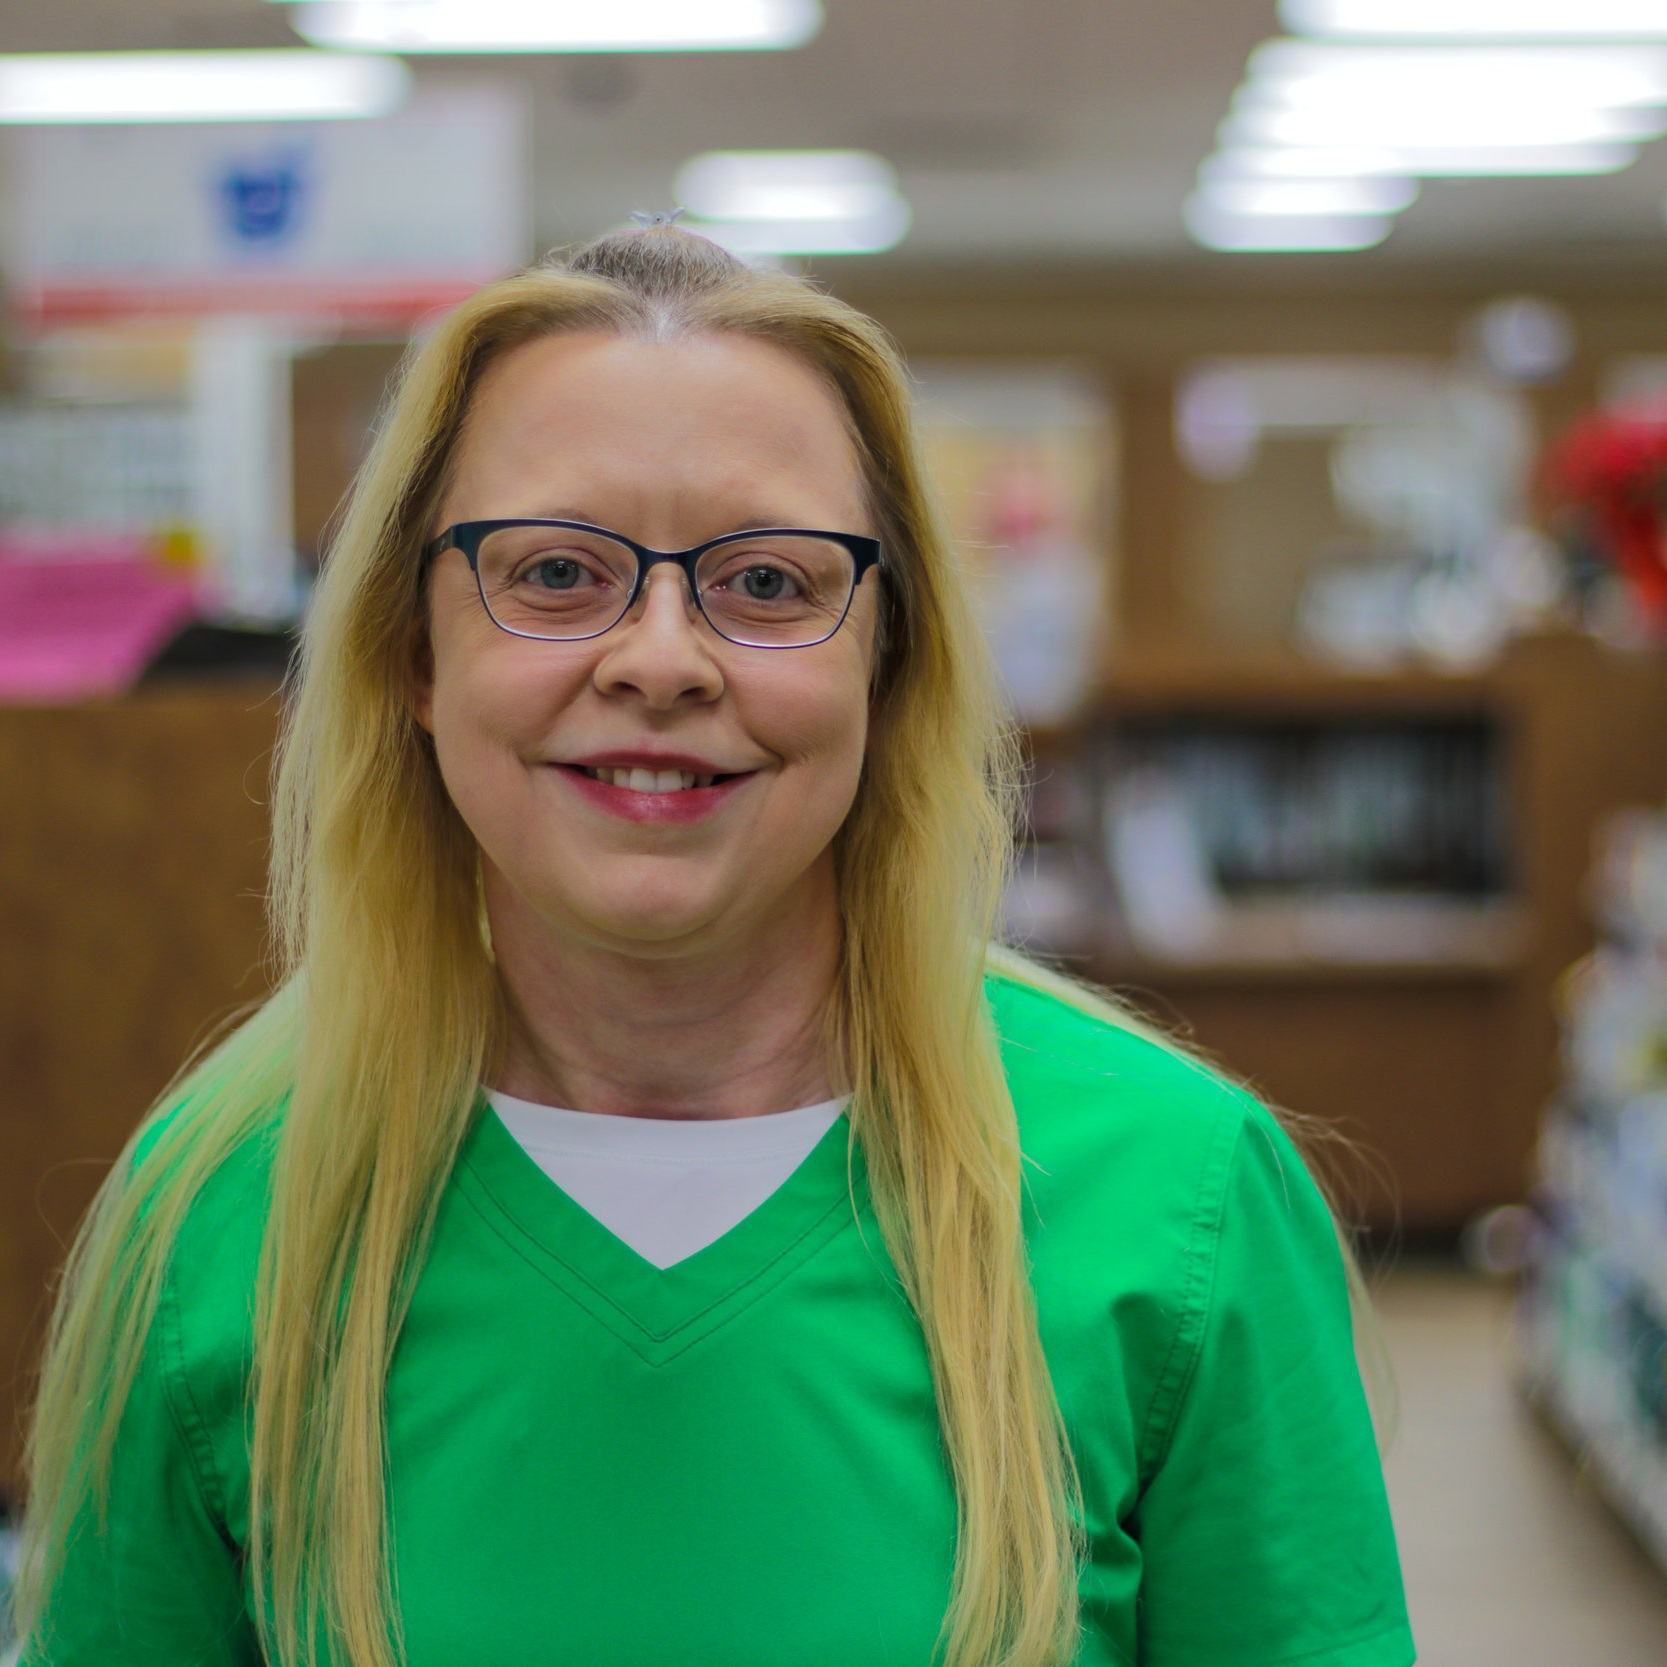 Jennifer G - Pharmacy Technician  Jennifer graduated from Poplar Bluff High School in 1998 and has a paraprofessional degree from TRC. While not at work, she enjoys reading and spending time with family.